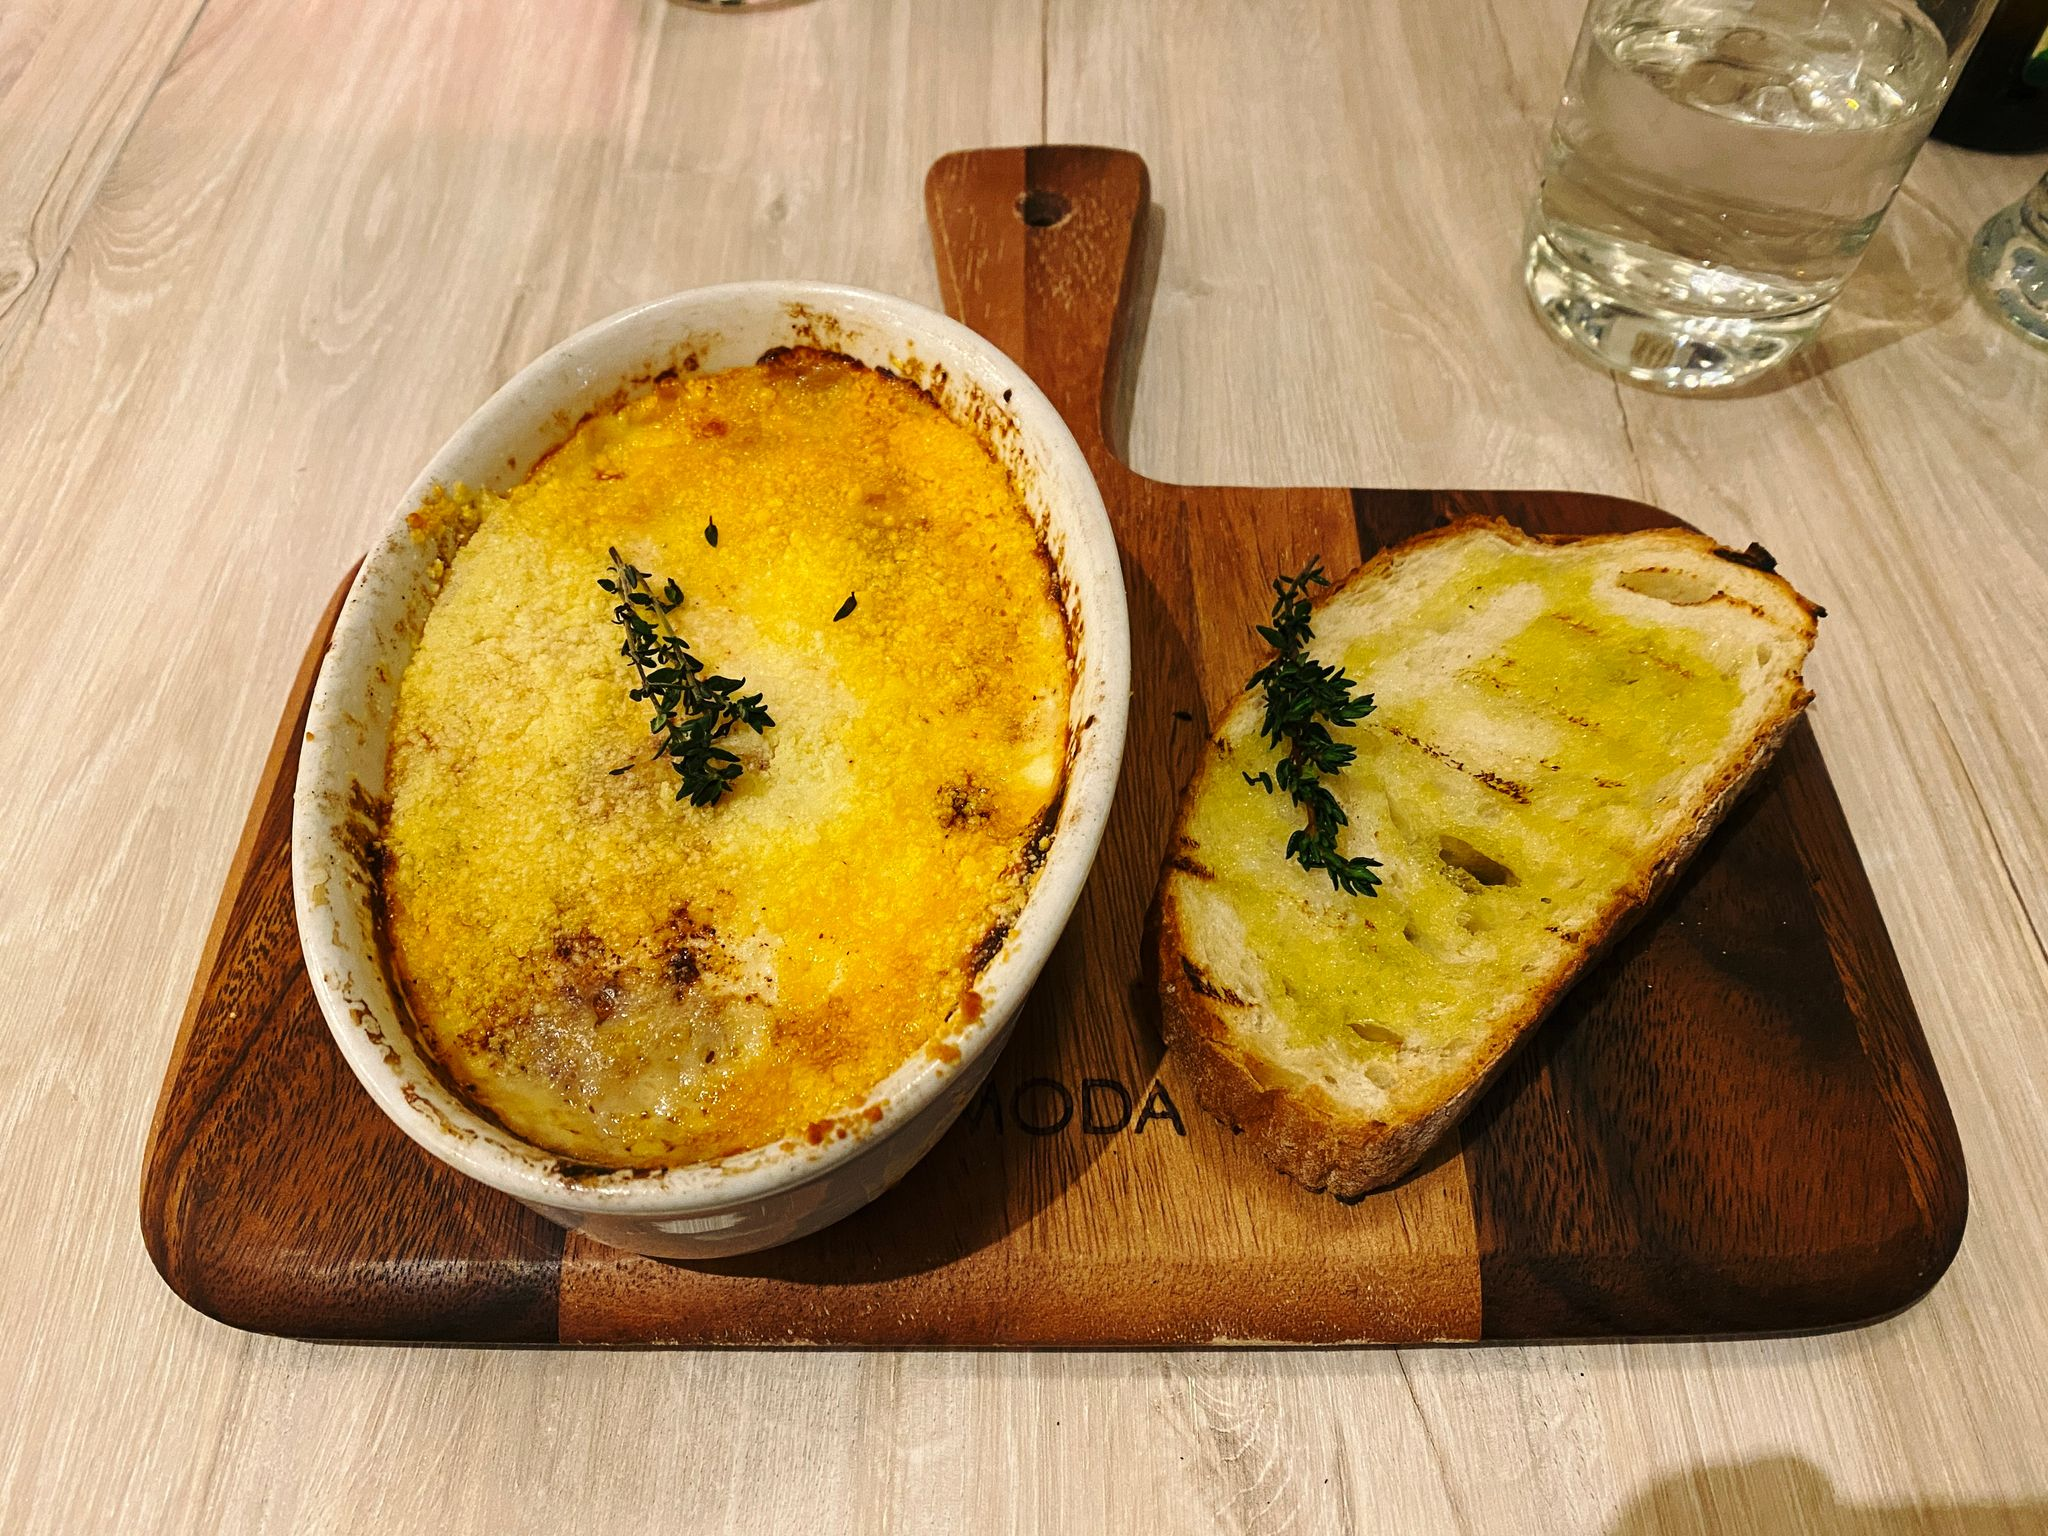 A photo of moussaka in a ceramic dish with a slice of sourdough next to it.